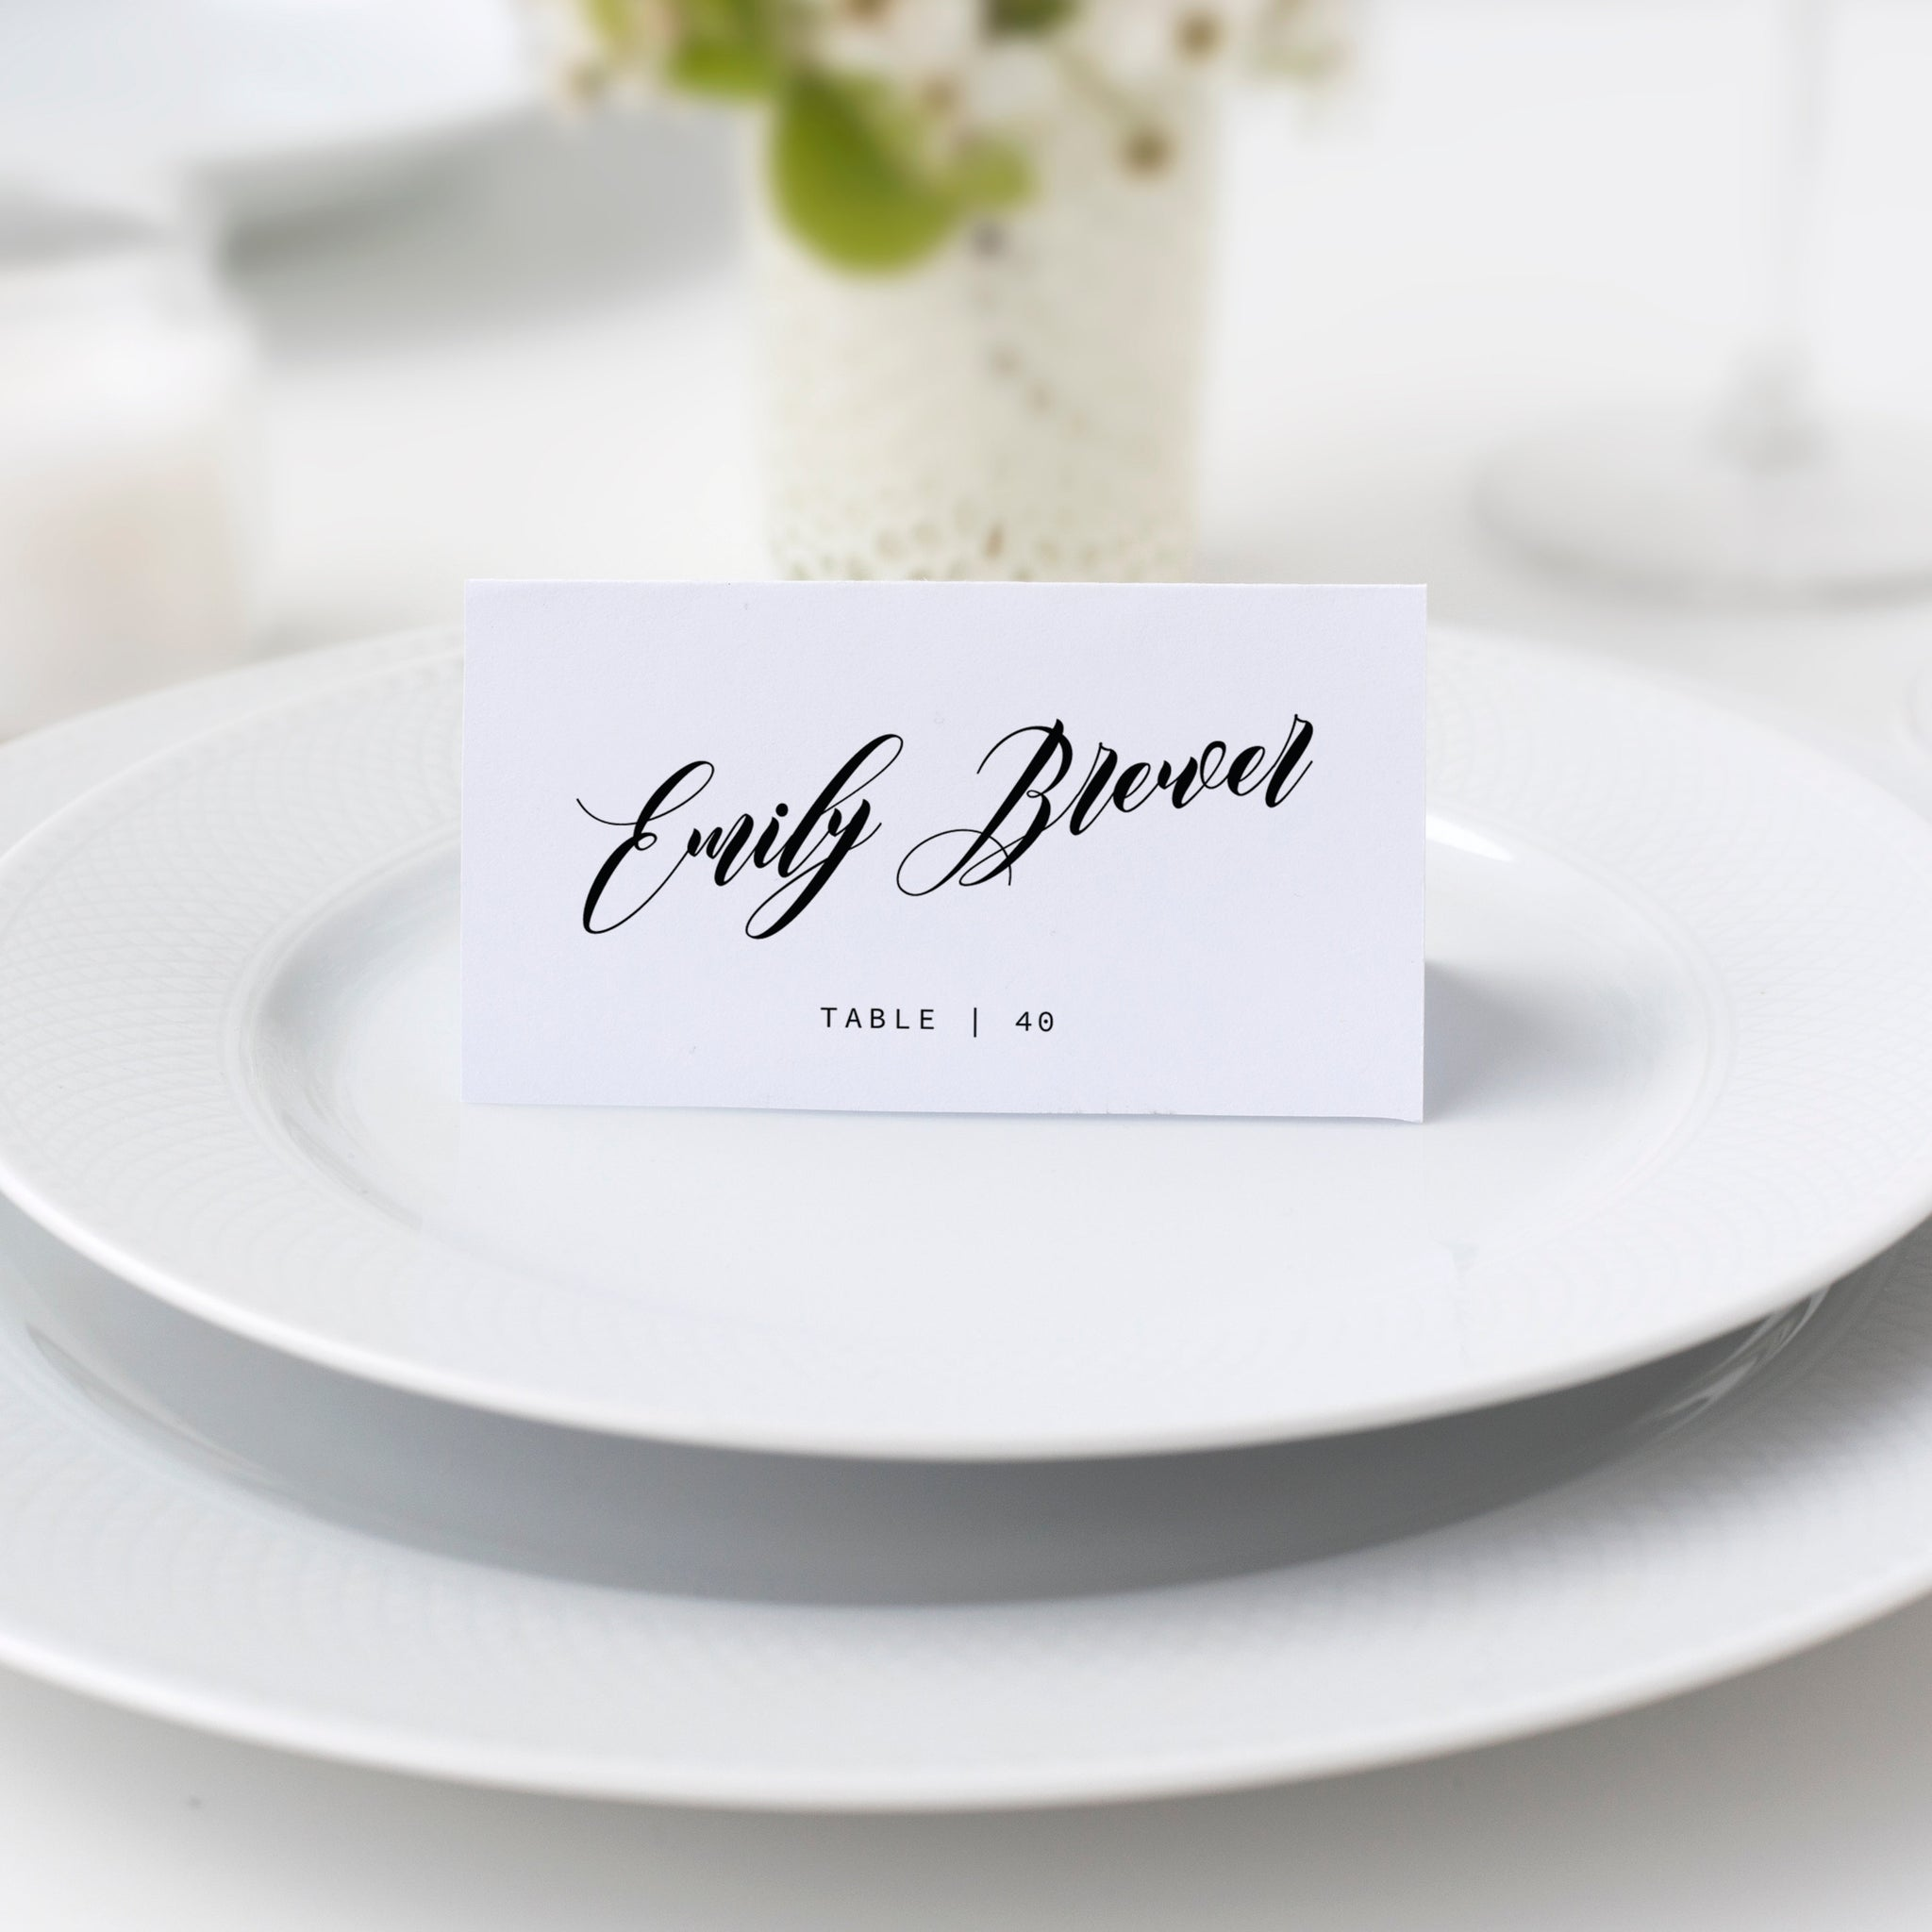 This is a photo of Printable Wedding Place Cards intended for seating arrangement